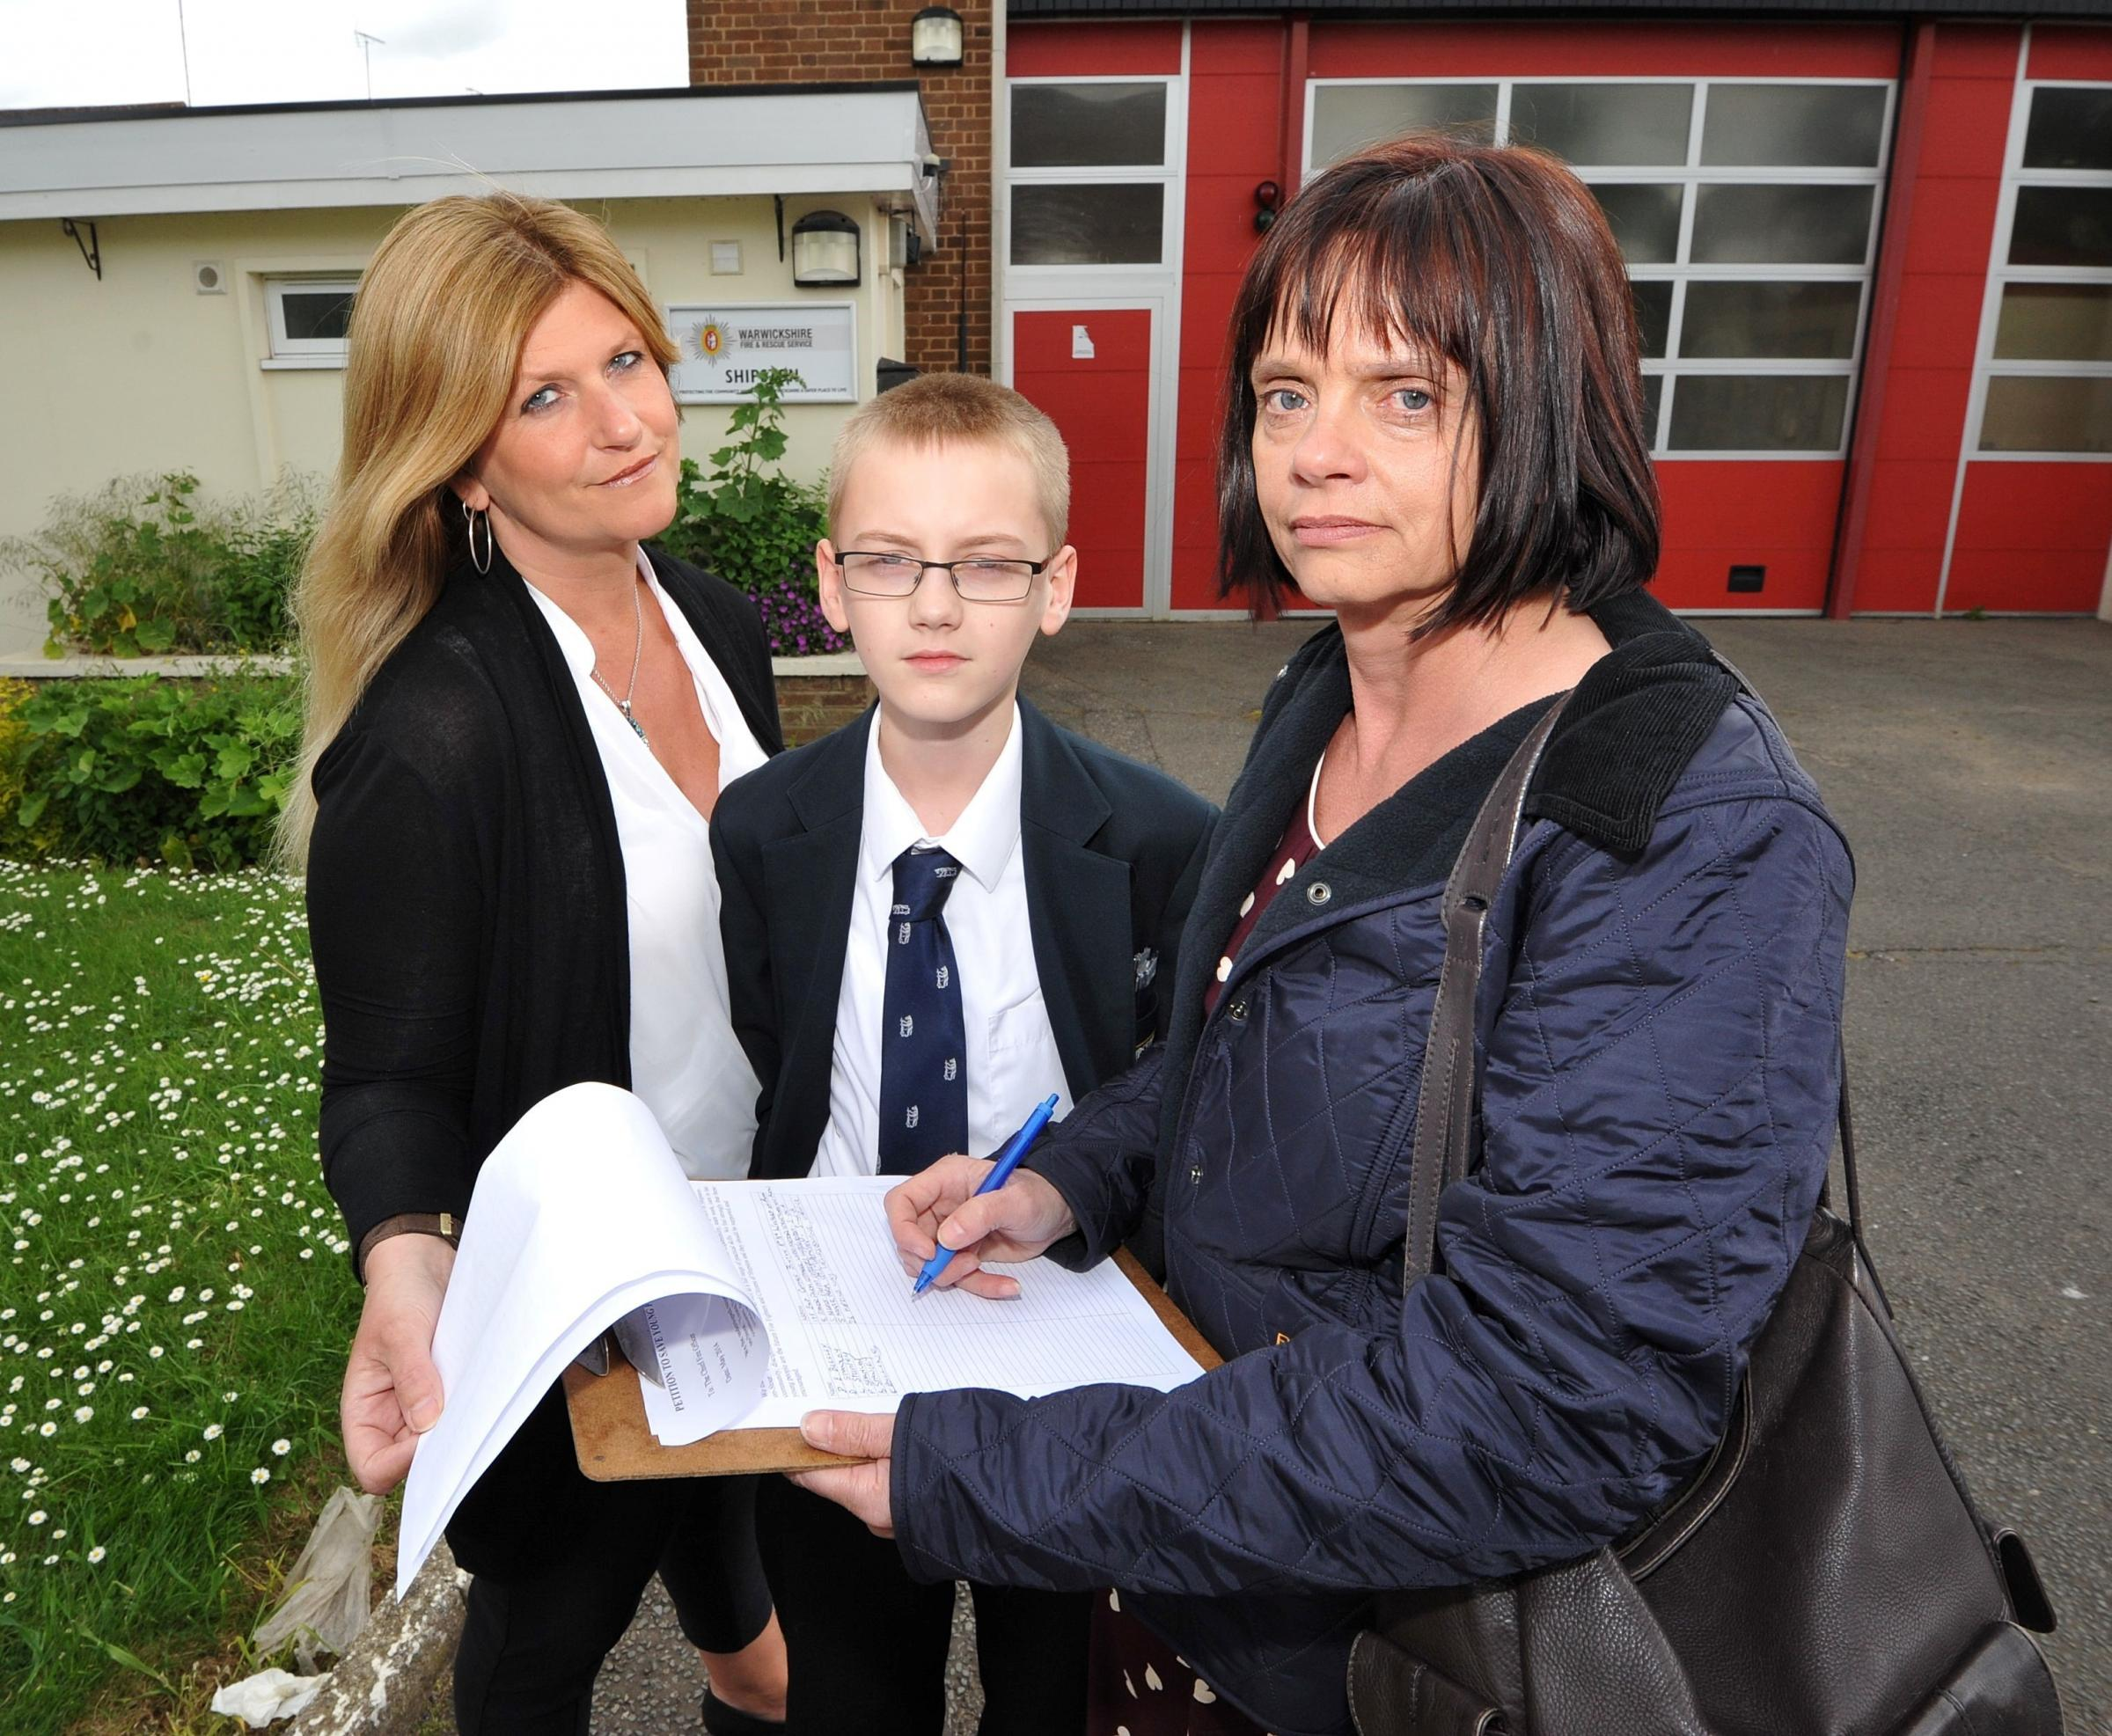 John Anyon      20/5/14         2114602801Shipston resident, Kate Billing signs the petition to save The Young Firefighters at Shipston Fire Station that are under threat from funding cuts with Donna Hall and her son, Matthew who is a Young Firefighter